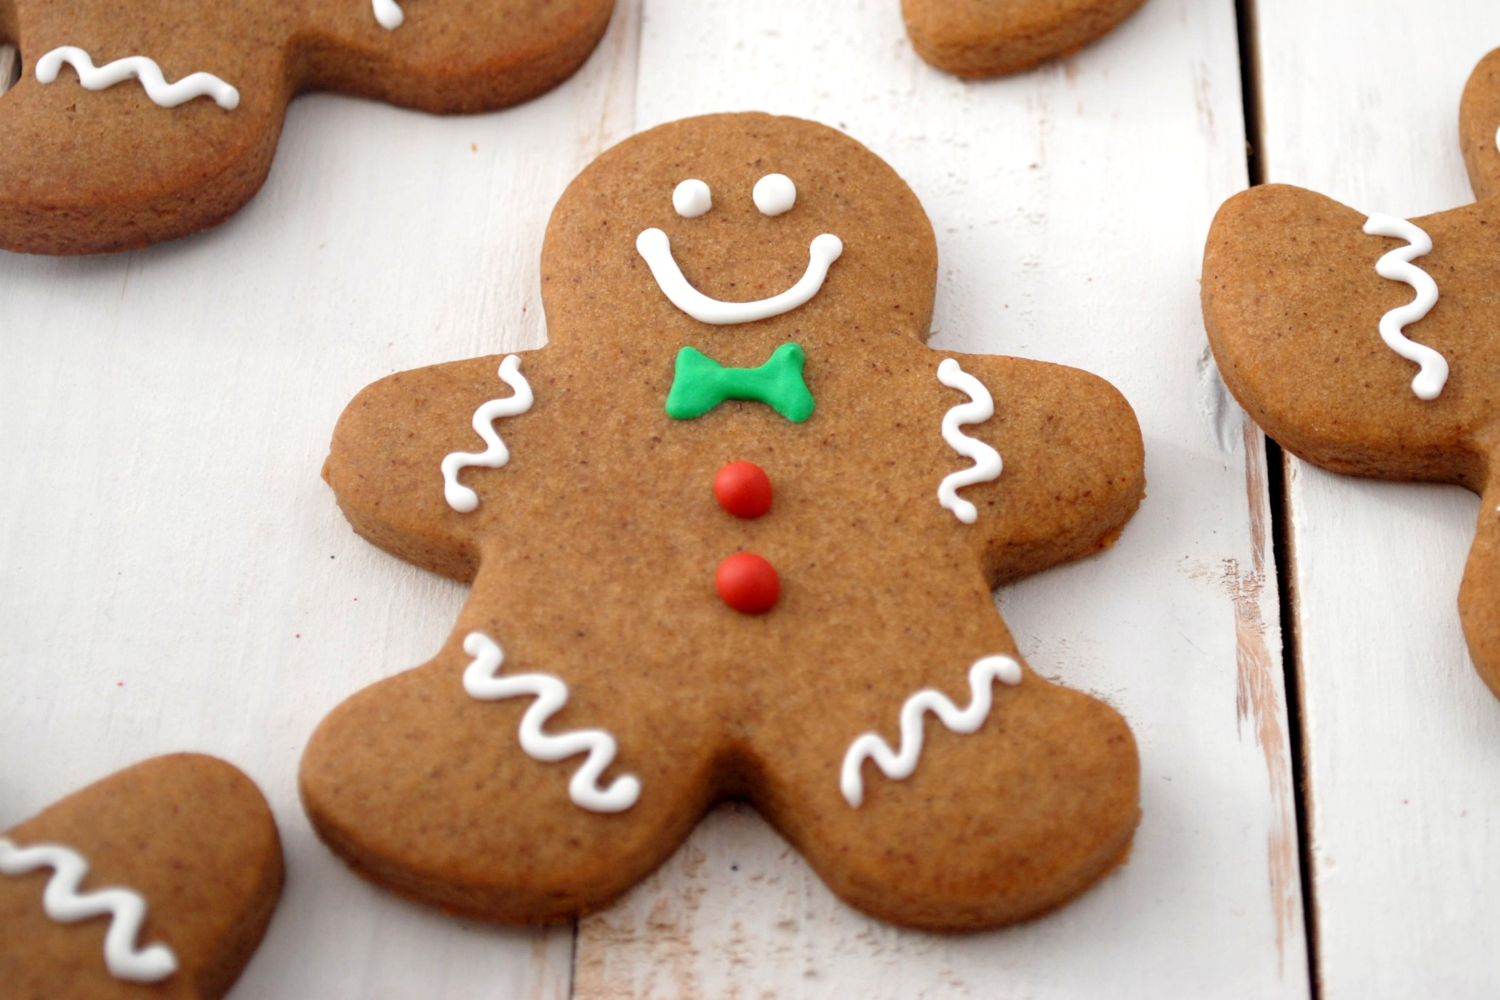 Piparkakku (Gingerbread Cookies) in shape of gingerbread man